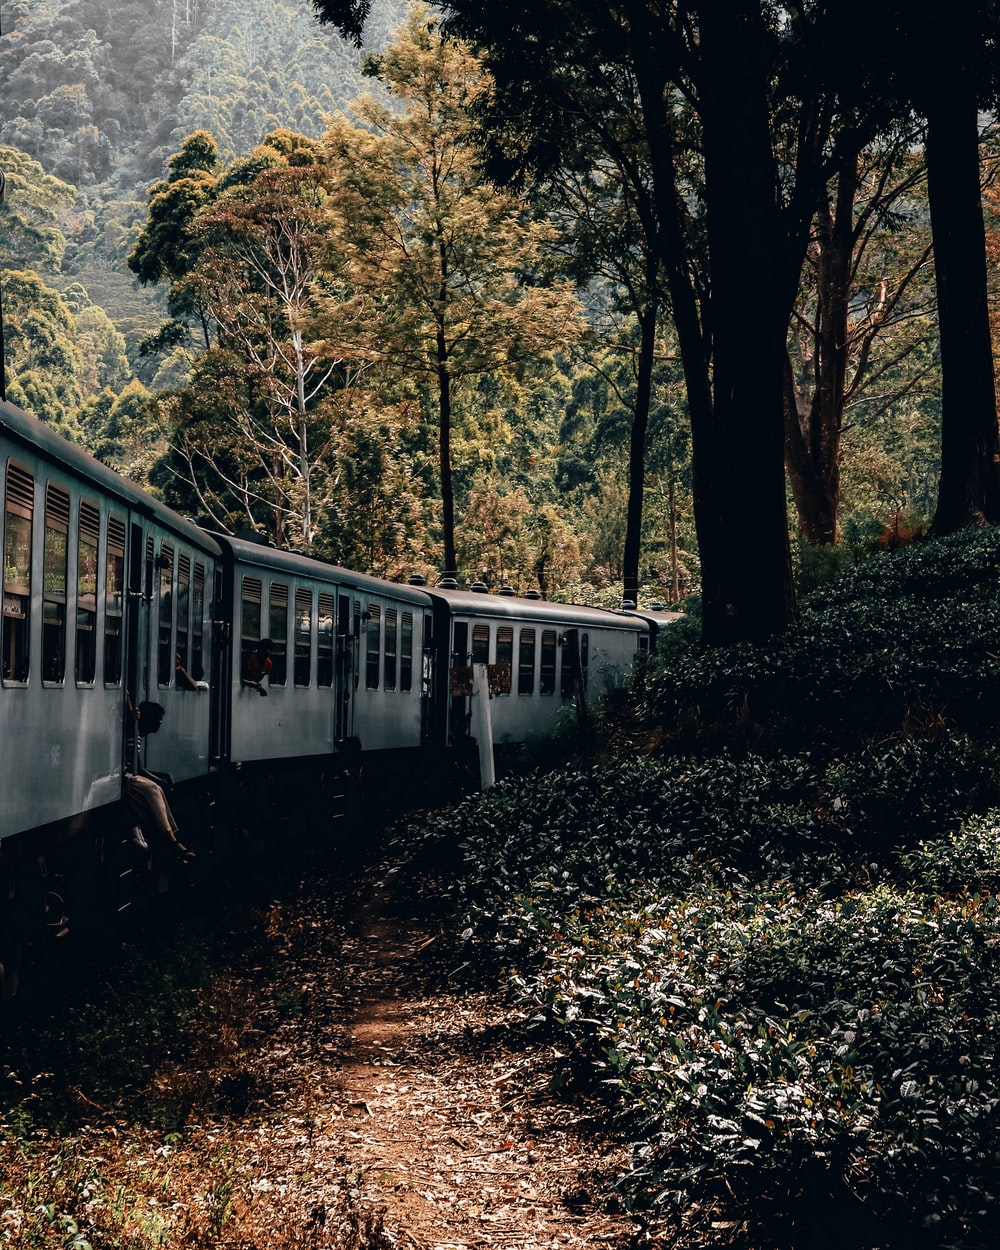 white train in forest